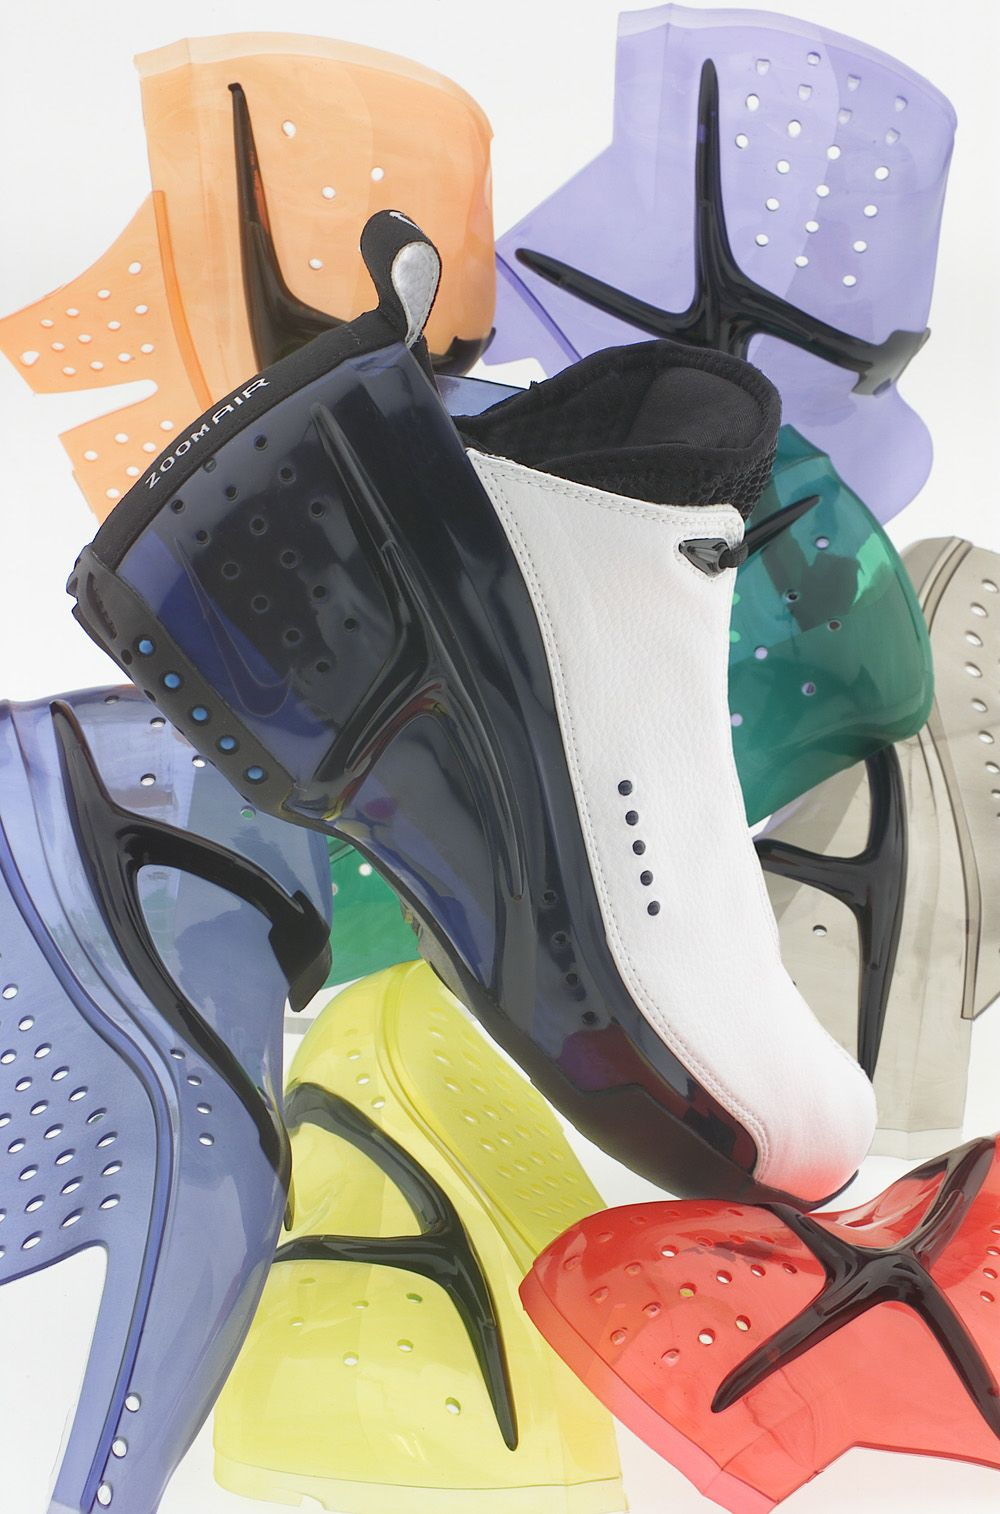 Desviarse congestión Adelaida  Zoom Ultraflight | Nike Basketball 1992-2012: 20 Designs That Changed The  Game - EU Kicks: Sneaker Magazine | Nike, Sneaker magazine, Nike basketball